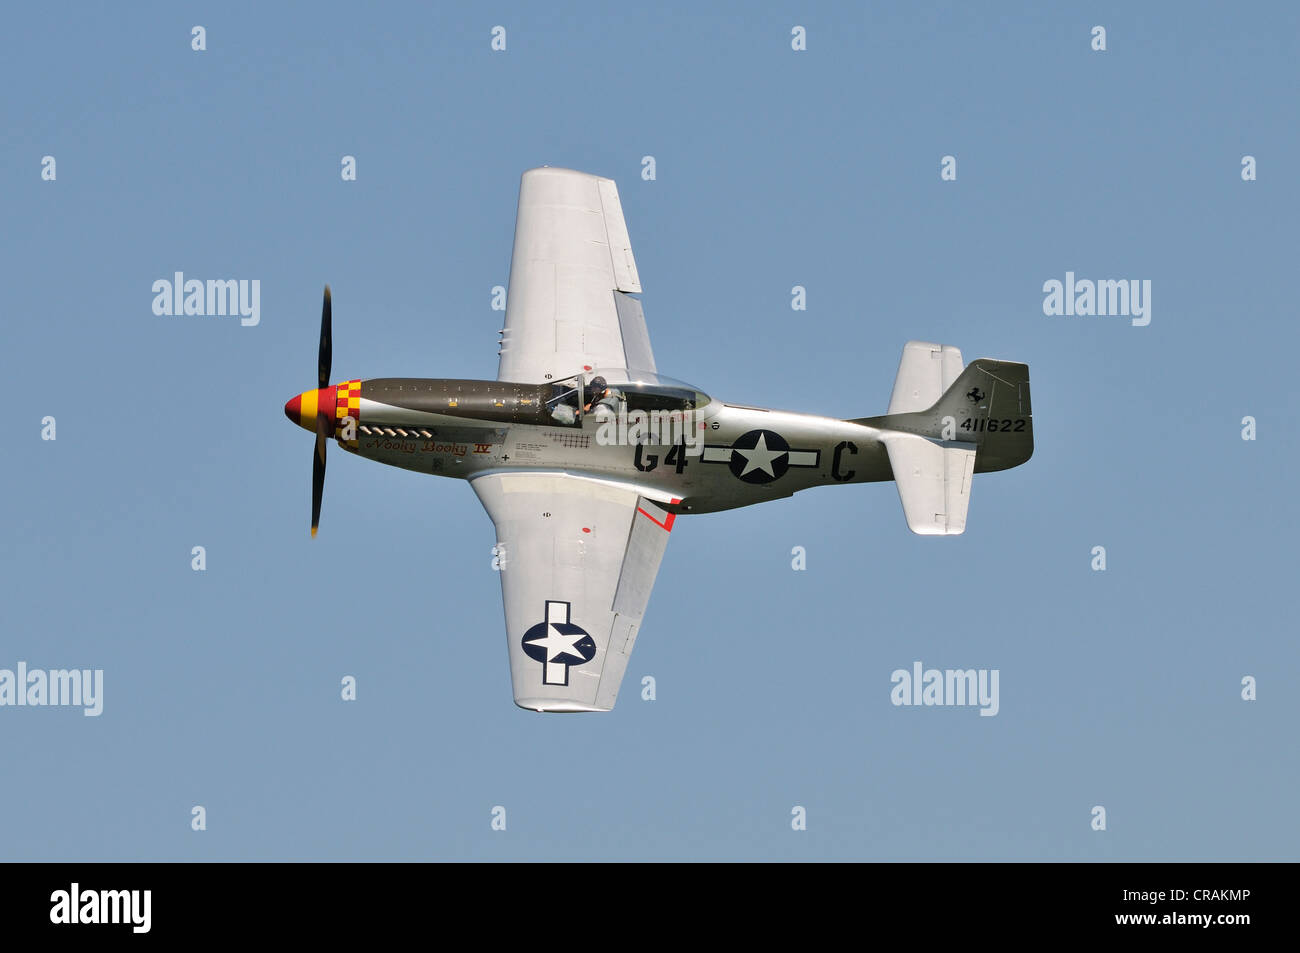 American fighter aircraft, North American P-51 Mustang, Europe's largest meeting of vintage aircraft in Hahnweide - Stock Image